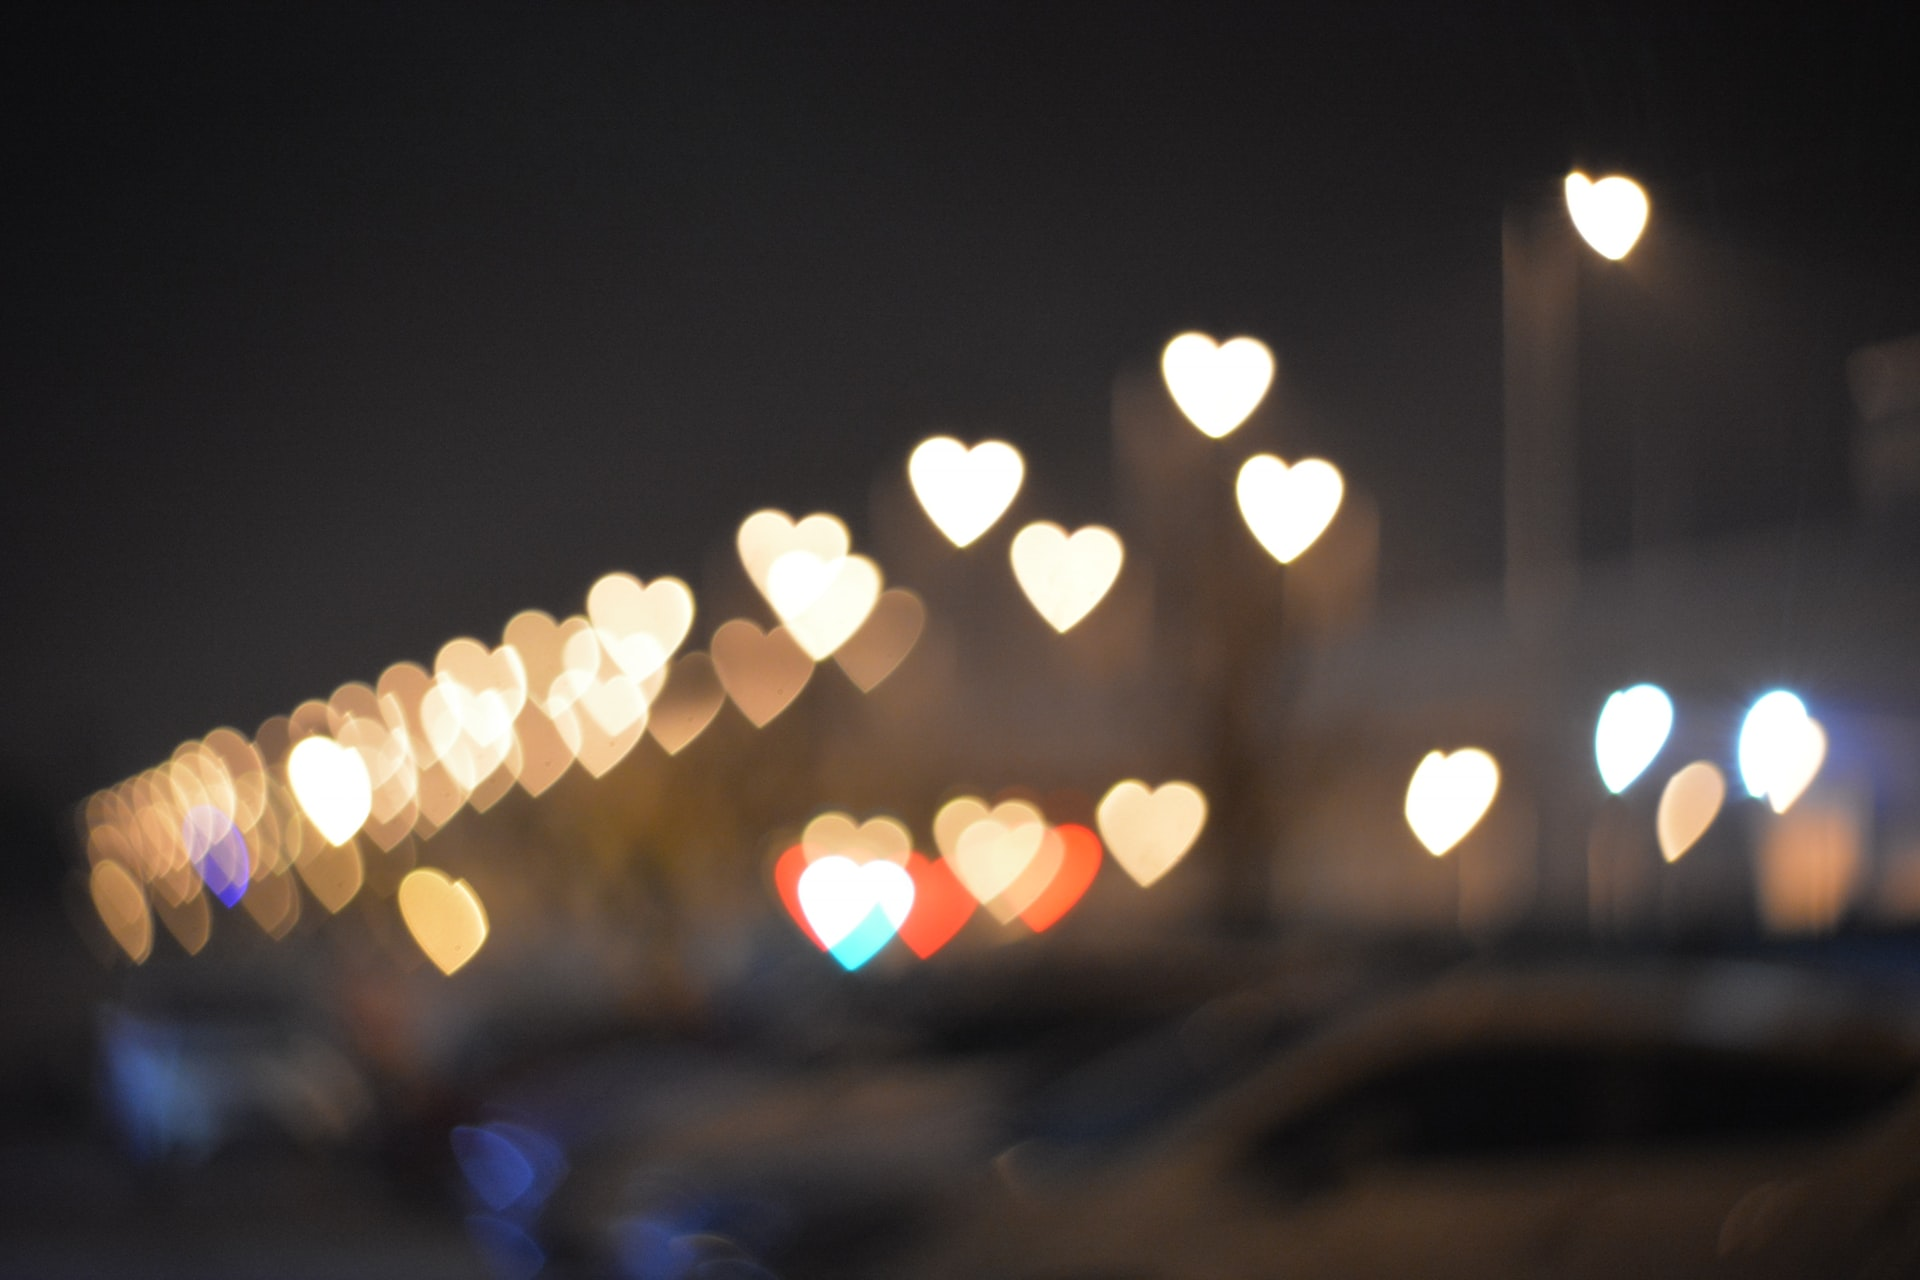 Heart-shaped lights in a variety of colors on a dark background